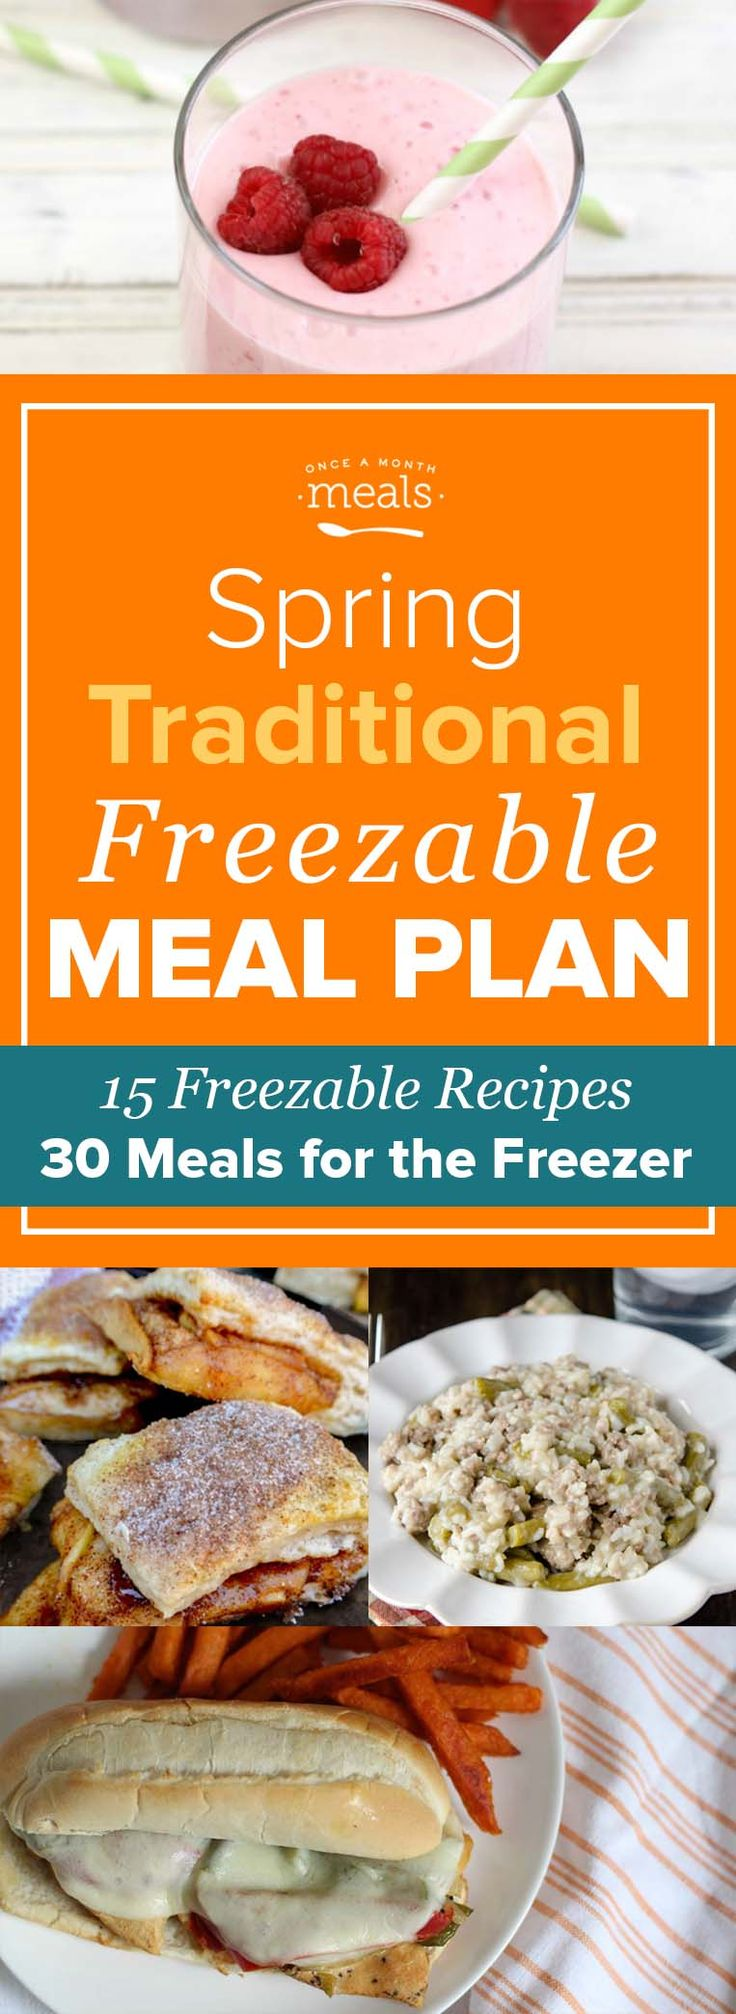 This Spring Traditional Freezer Menu features flaky Apple Pie Biscuits, irresistible Crockpot Chicken Philly Cheesesteaks, and creamy Chicken Pesto Stuffed Shells all while simplifying your meal planning and prep.